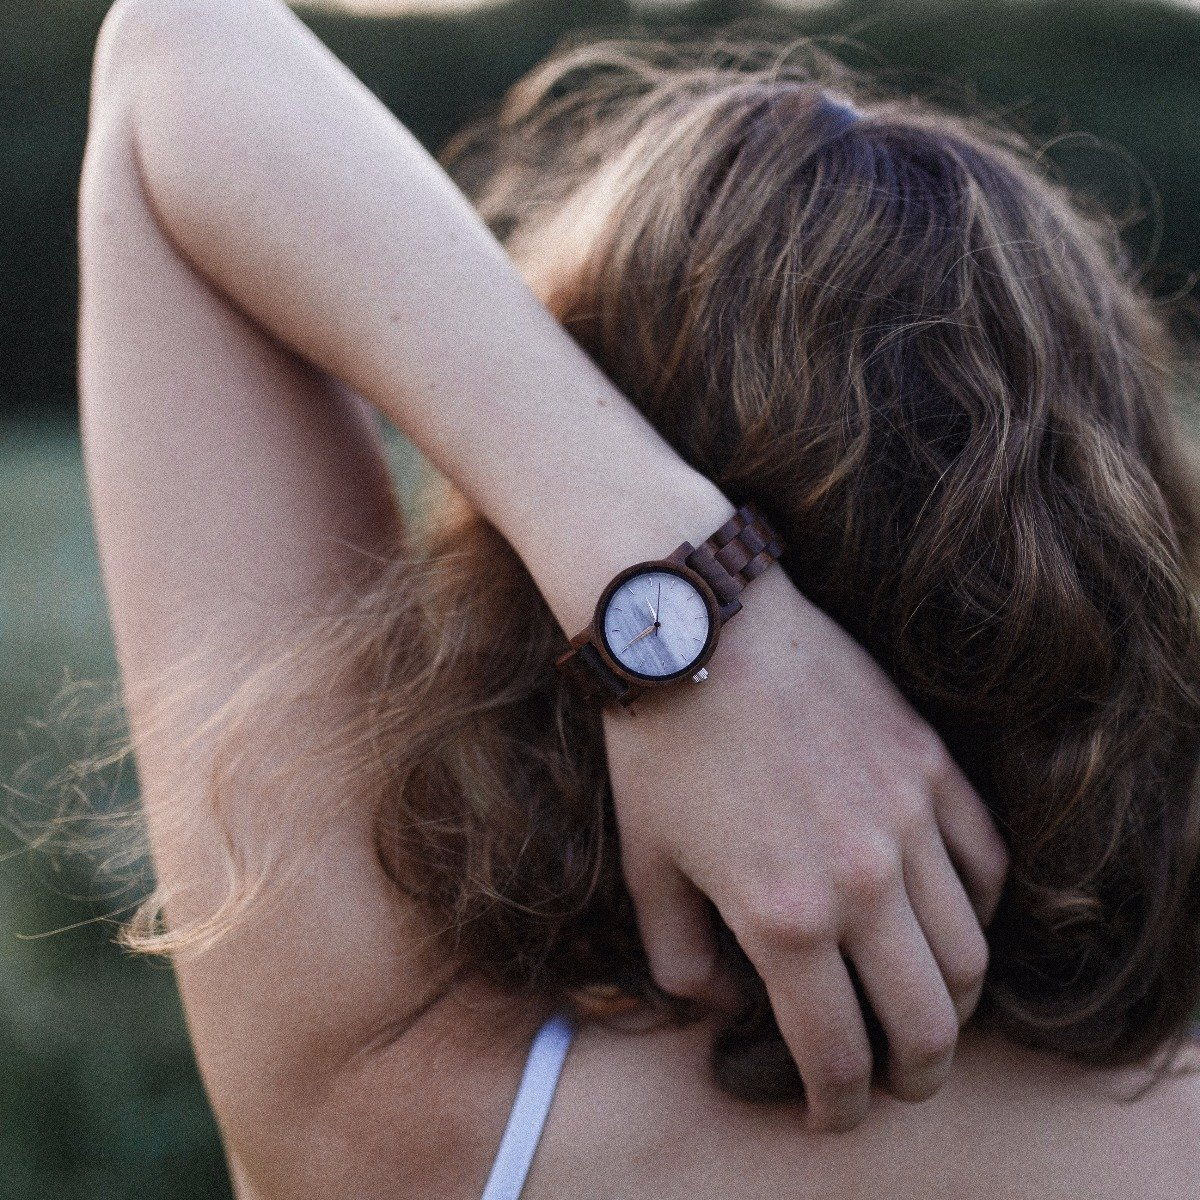 Wooden watch Air with a white marble dial on a woman's wrist